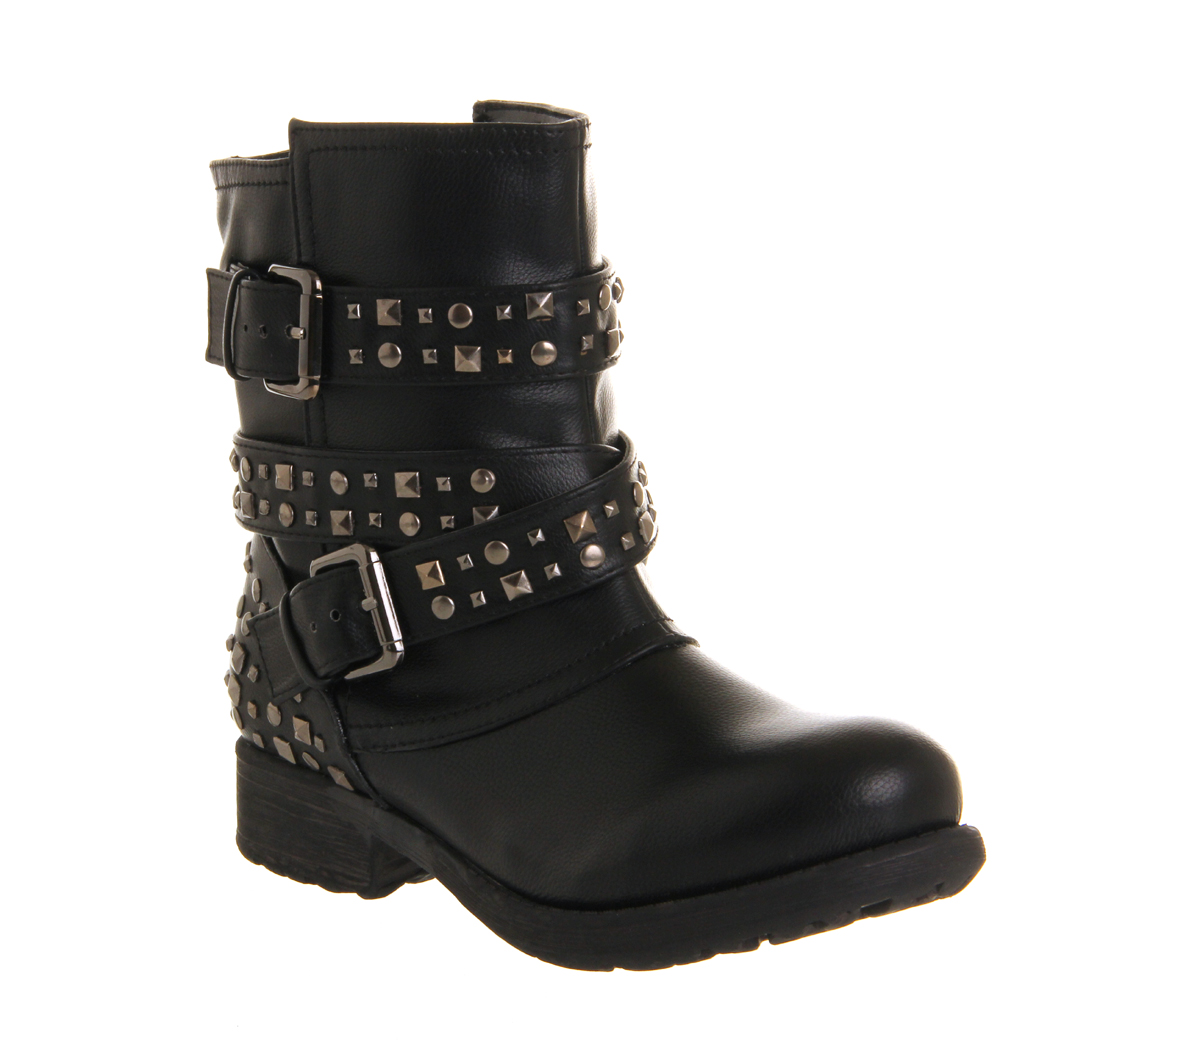 Find great deals on eBay for black boots womens size 9. Shop with confidence.